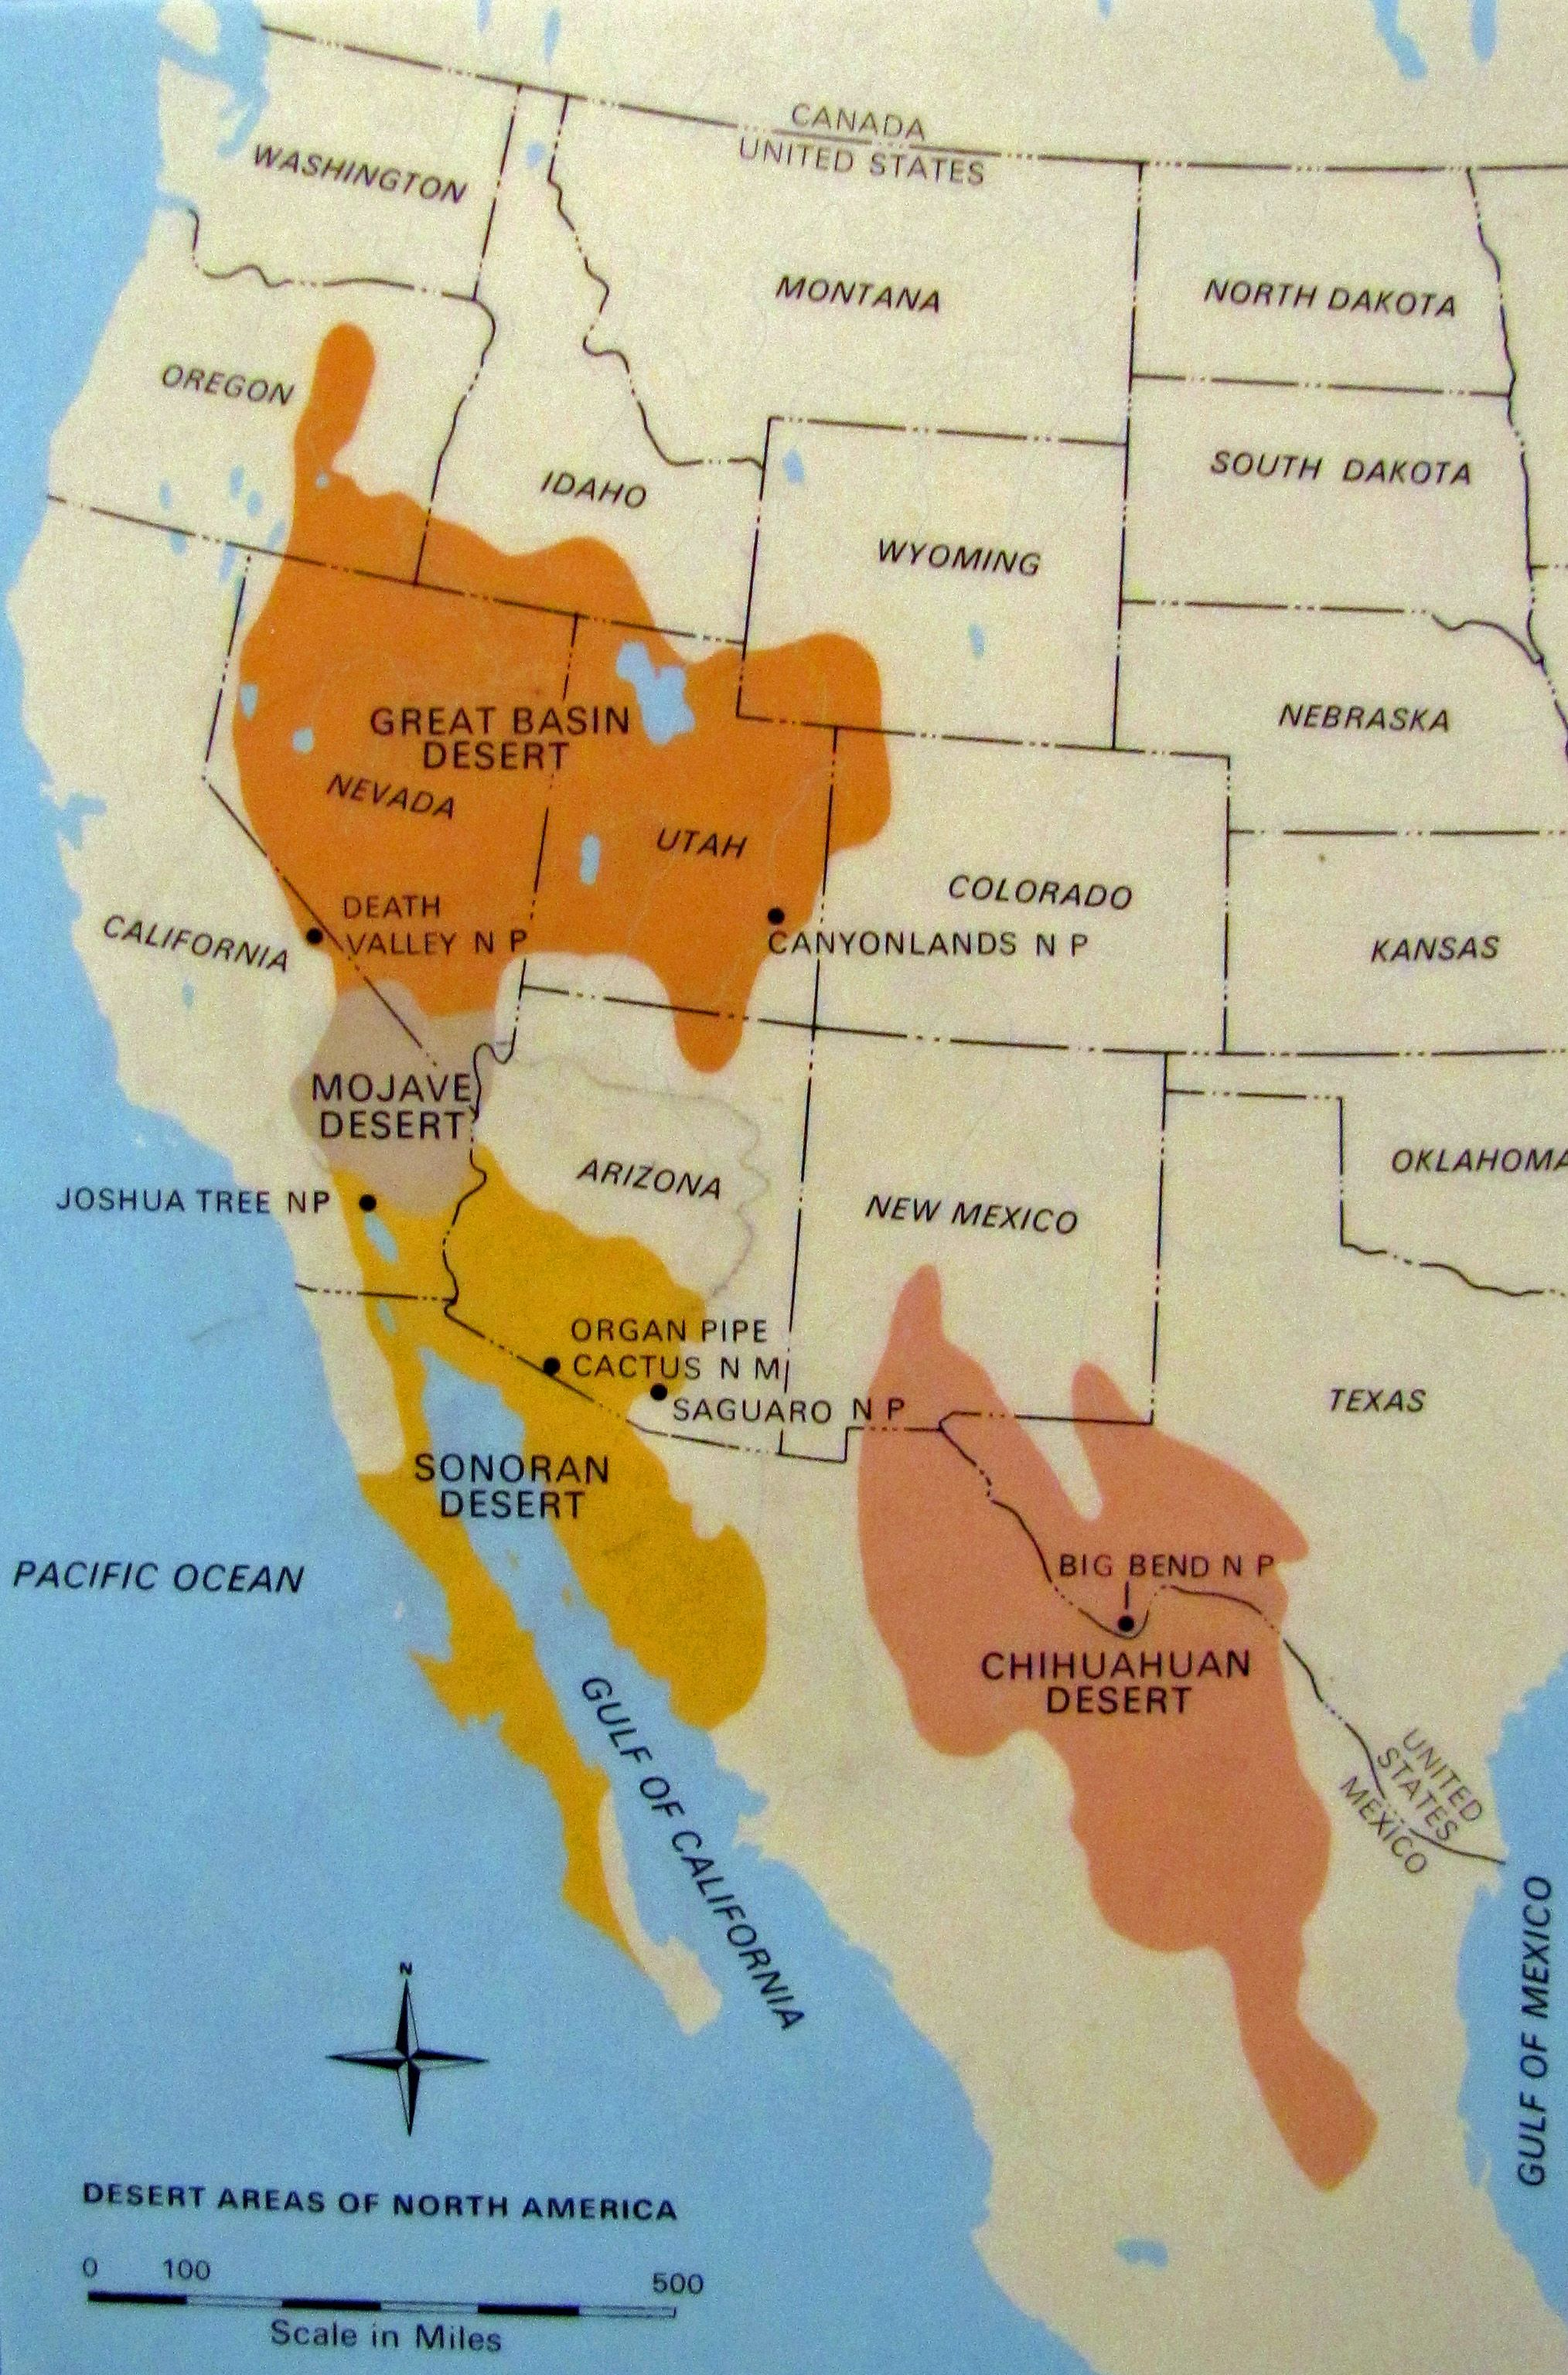 Sonoran desert map united states social studies pinterest sonoran desert map united states publicscrutiny Choice Image